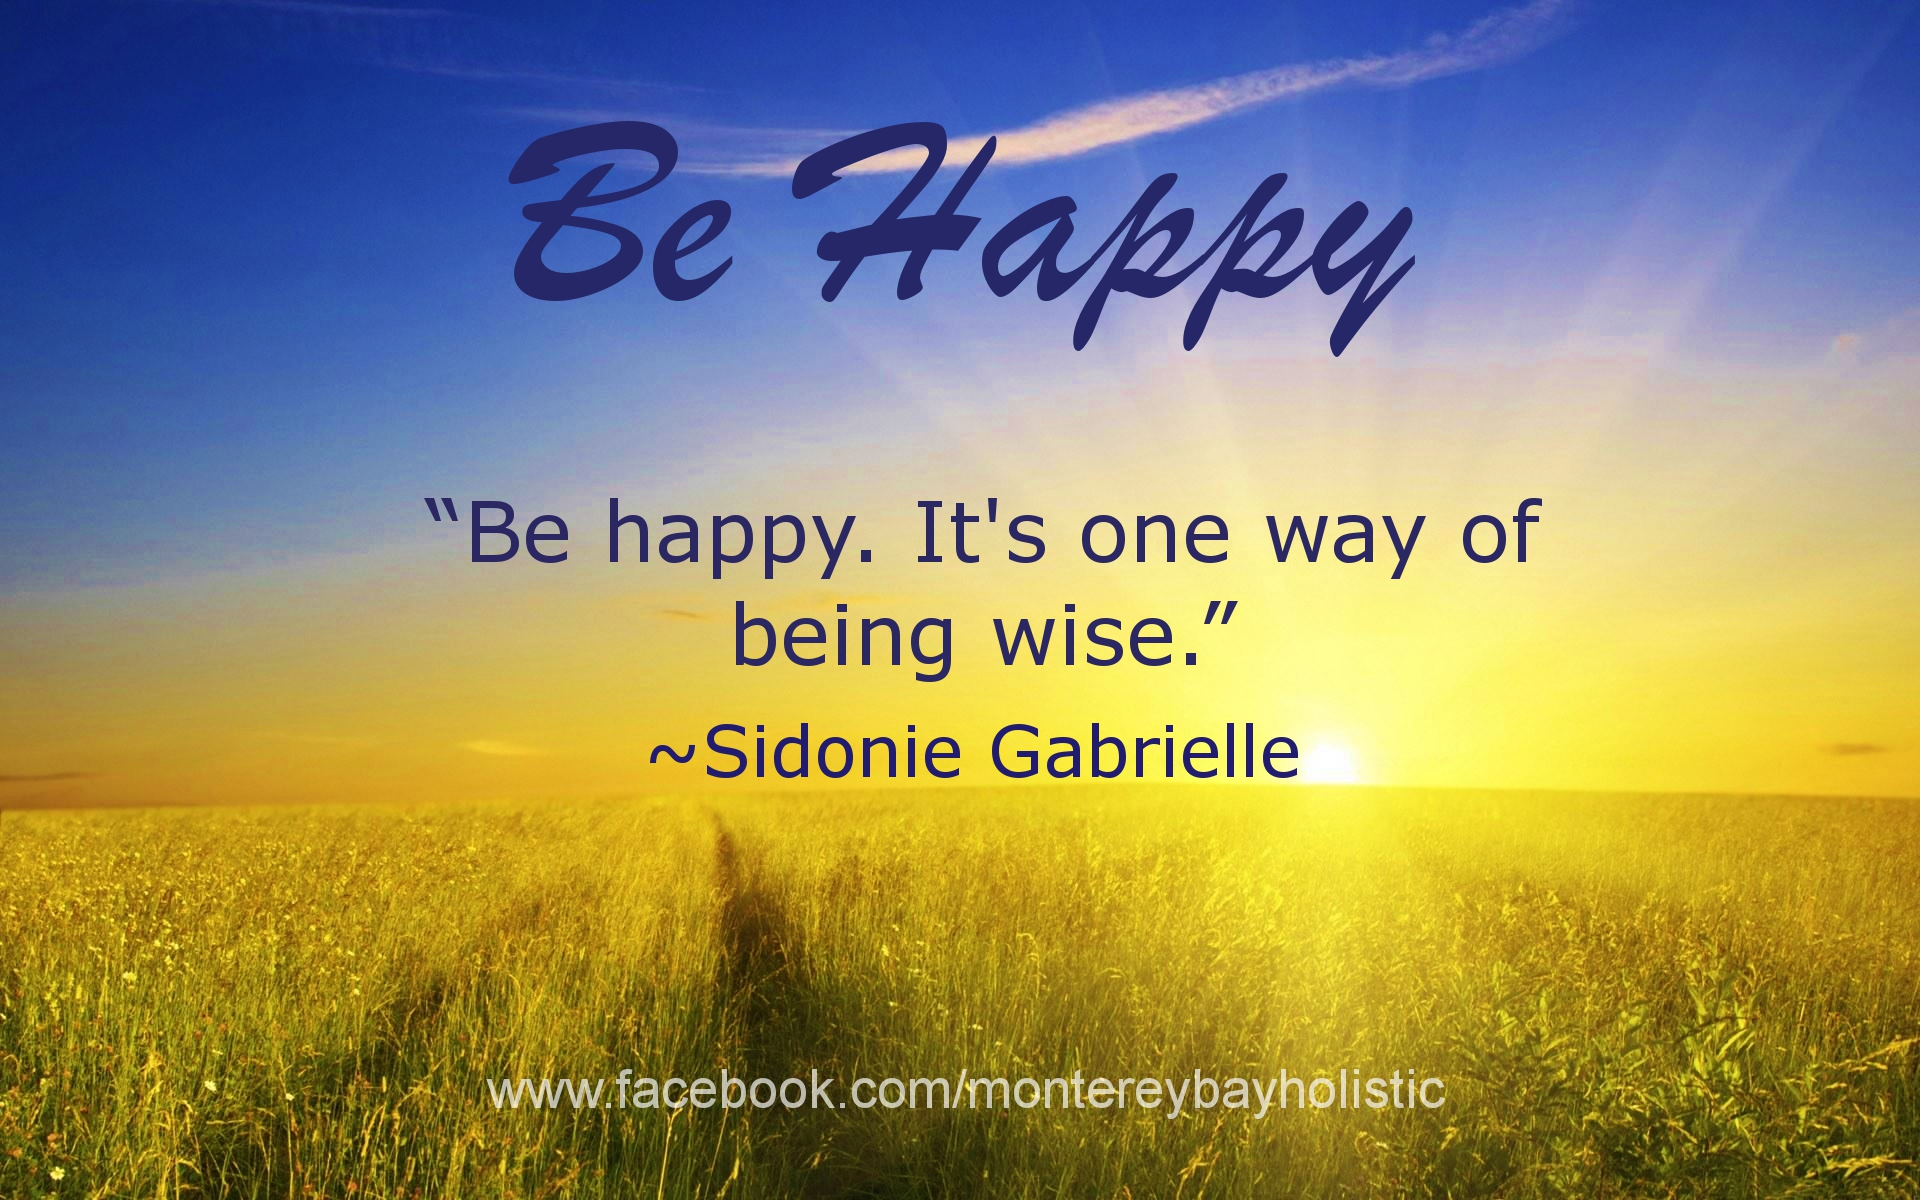 Happiness Quotes: Monterey Bay Holistic Alliance